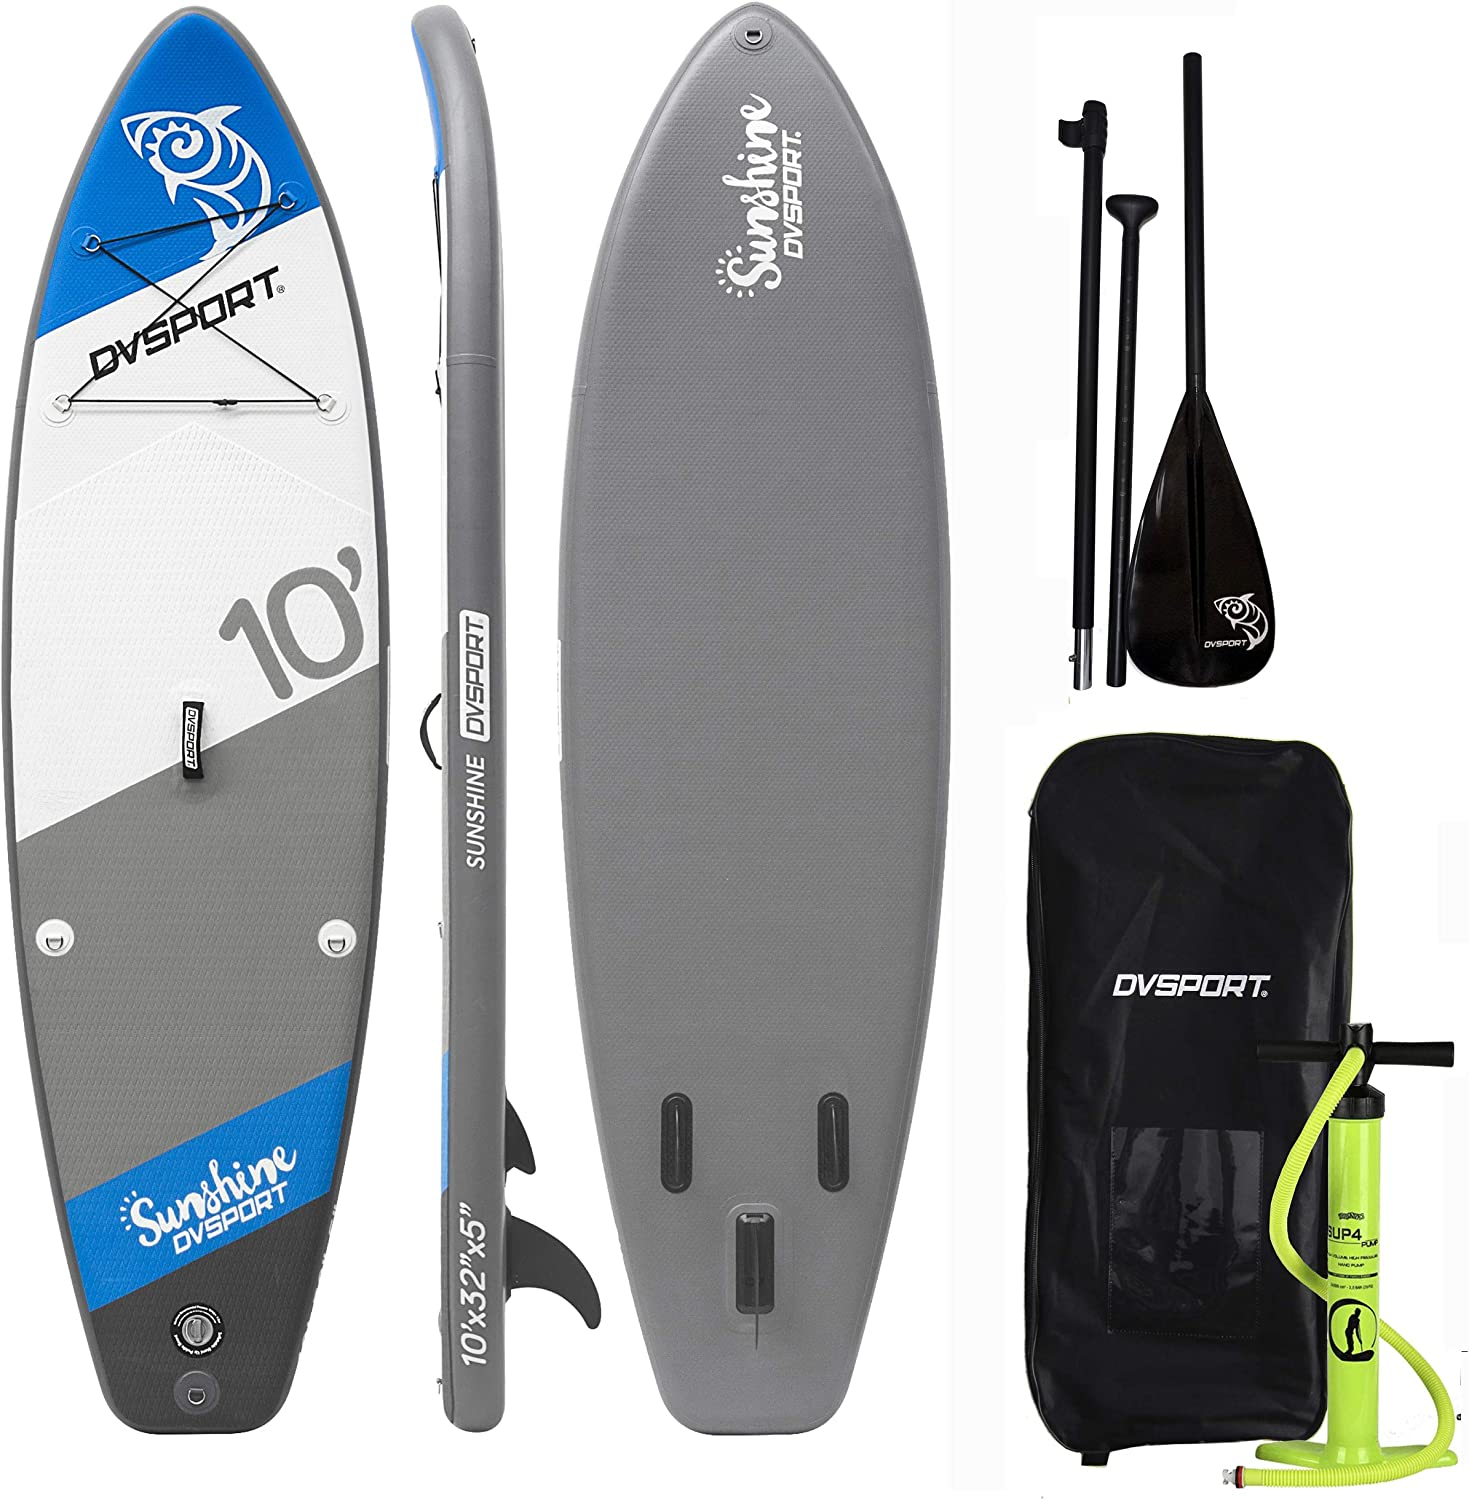 DVSPORT Inflatable 10 Stand Up Paddle Board 5 Inches Thick Double layers Complete Package ISUP Includes Adjustable Aluminum Paddle Travel Backpack BRAVO Double Function Hand Pump Water Proof Bag